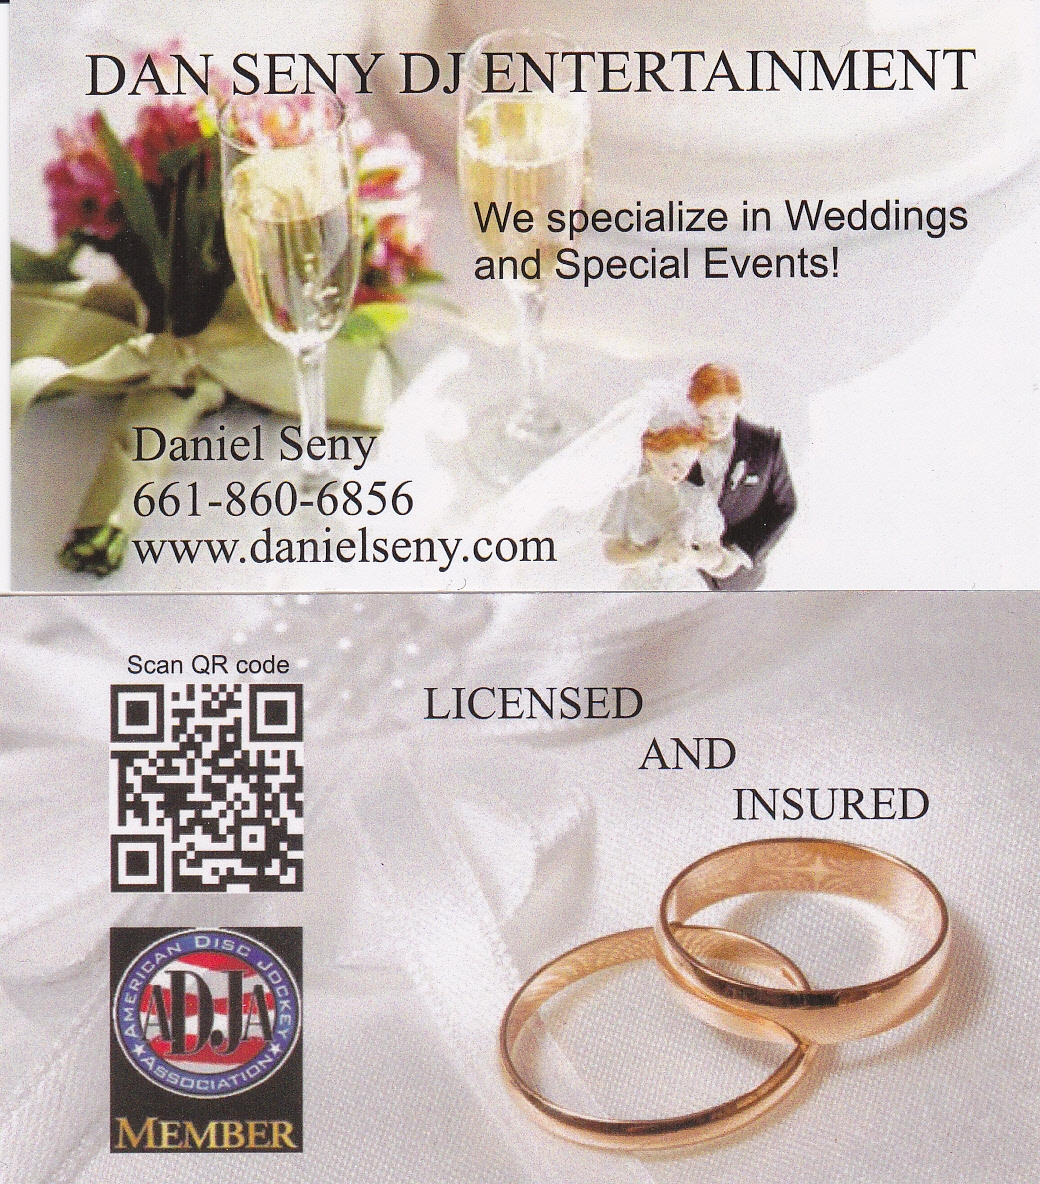 Wedding dj business card wedding mc weddings wedding dj business card reheart Image collections